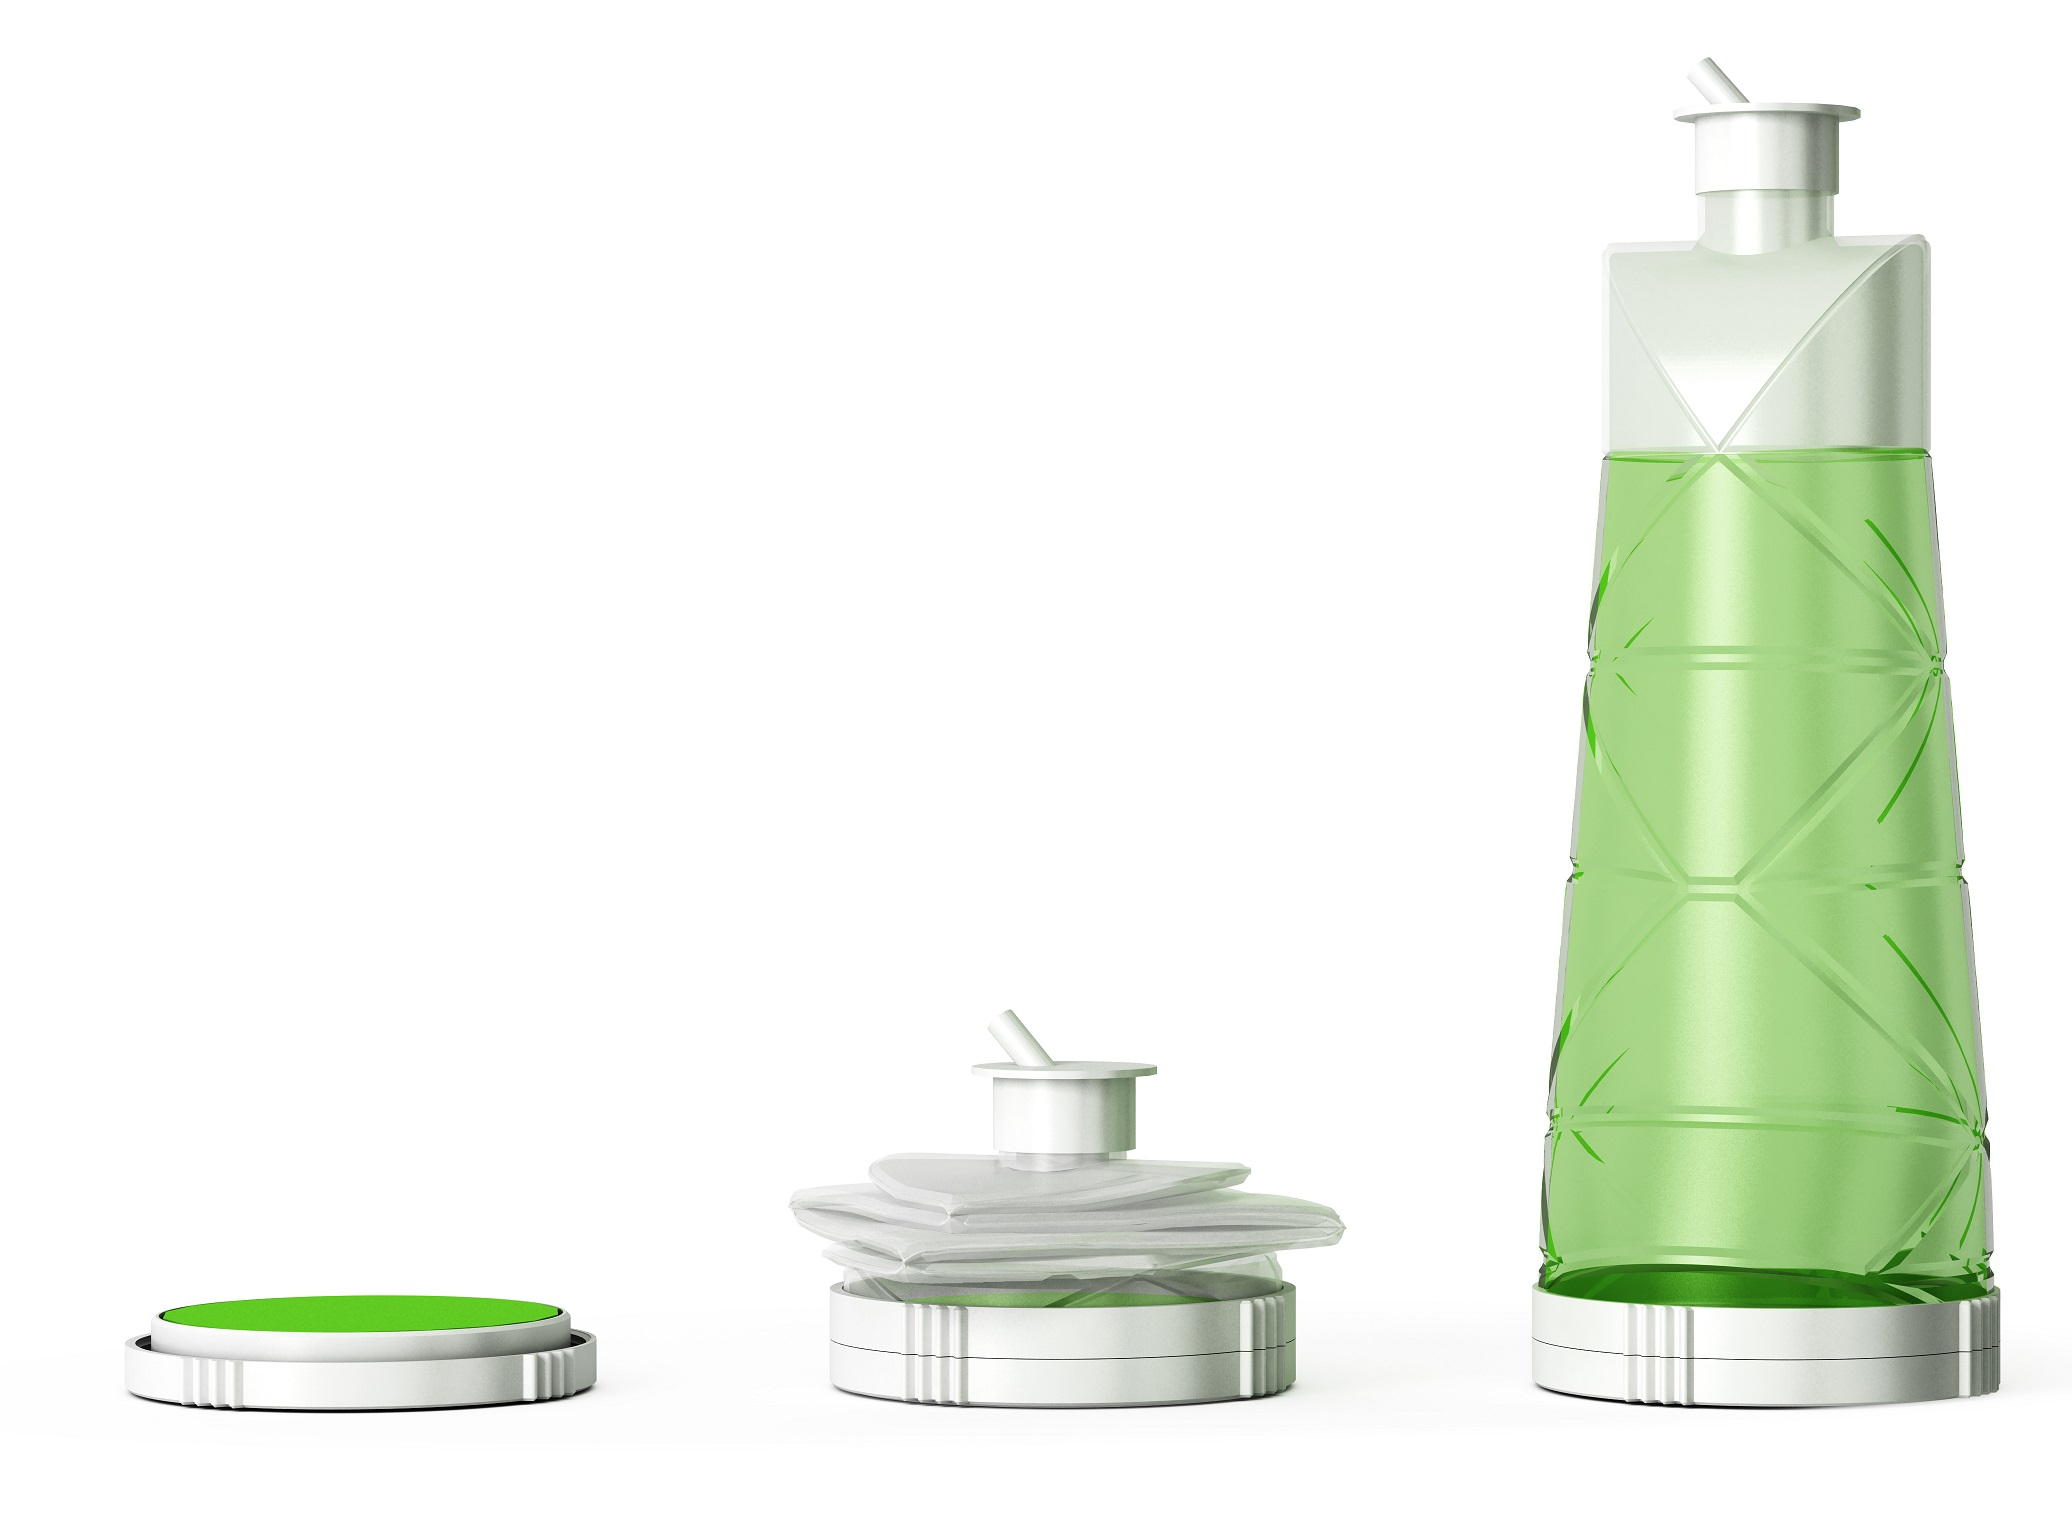 DiFOLD Reusable Packaging Concepts Concentrate